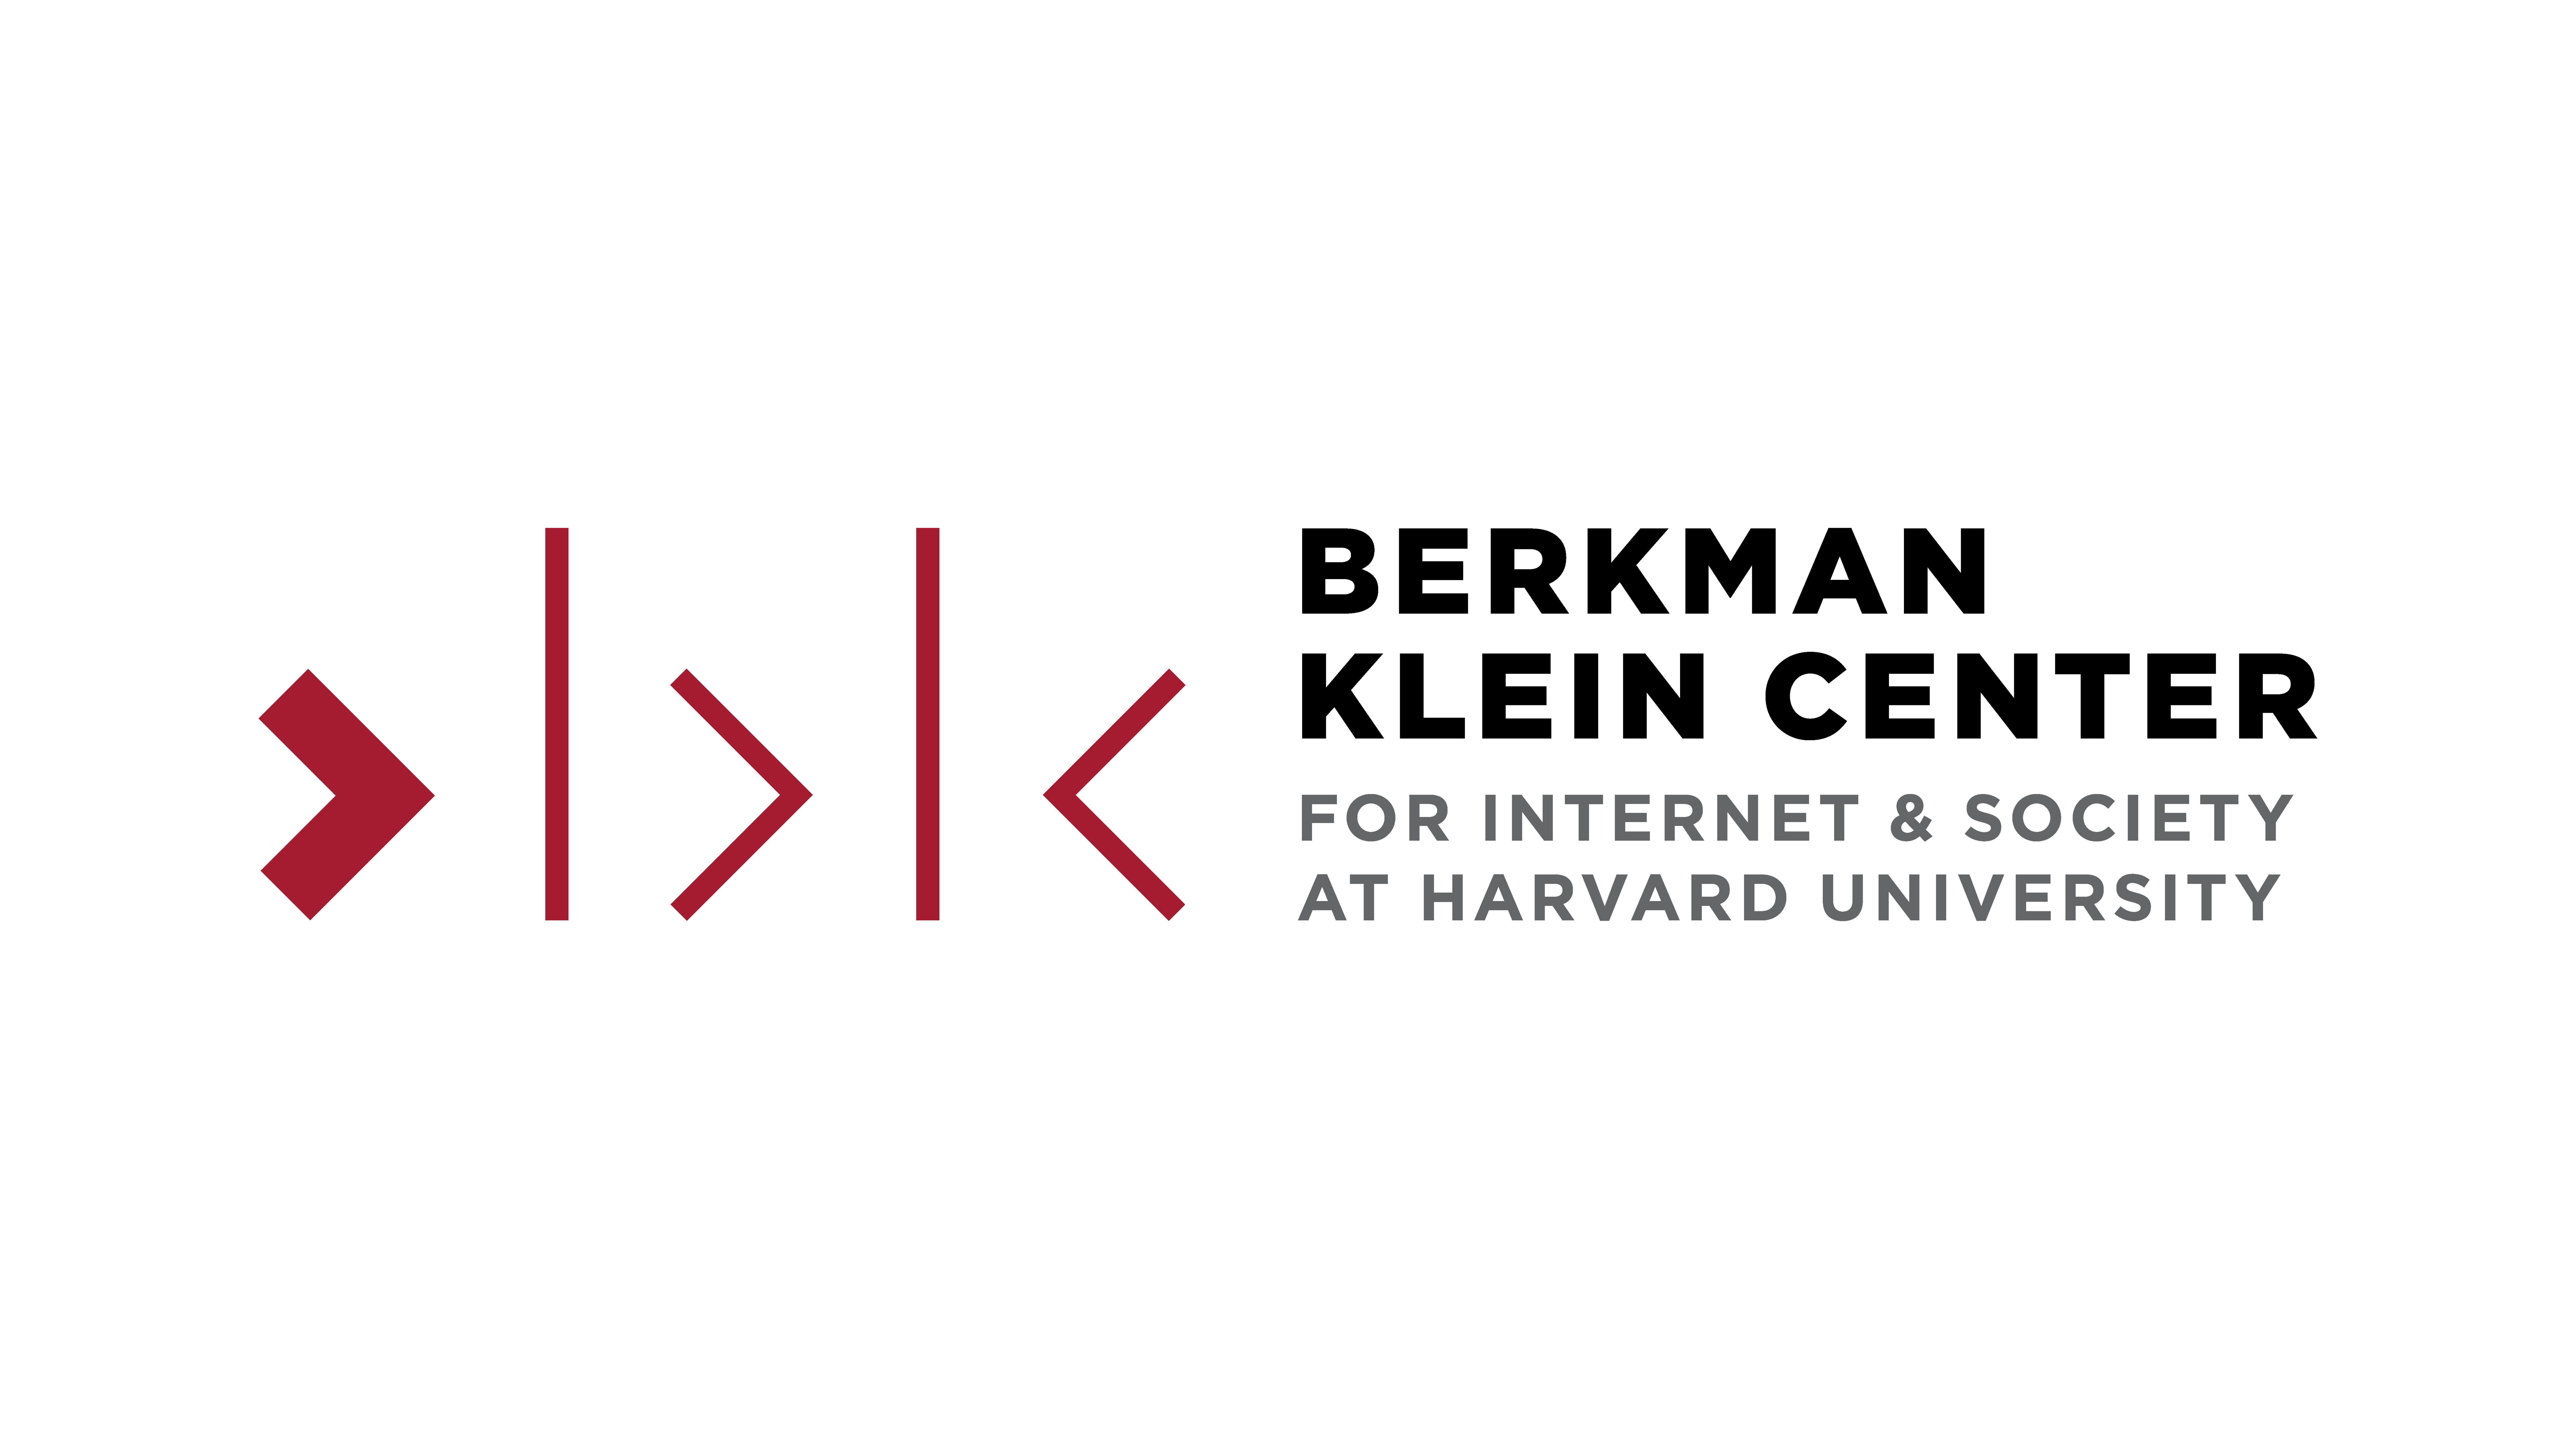 Berkman Klein Center for Internet & Society